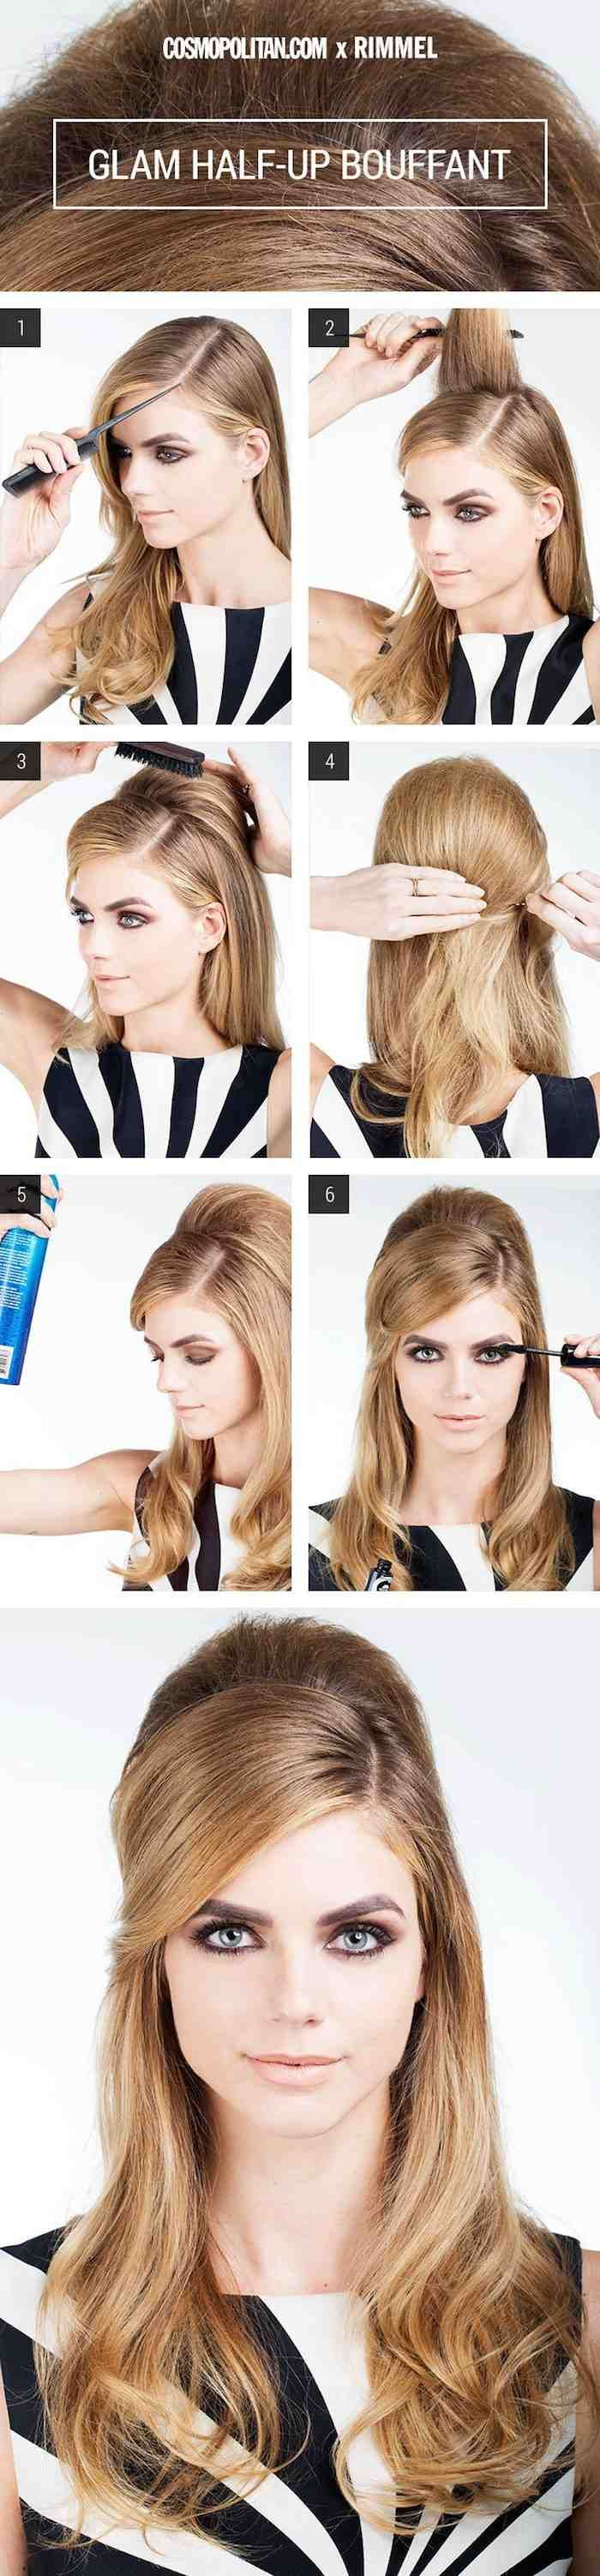 Hairstyle retro tutorials: 6 diy vintage hairstyles new photo